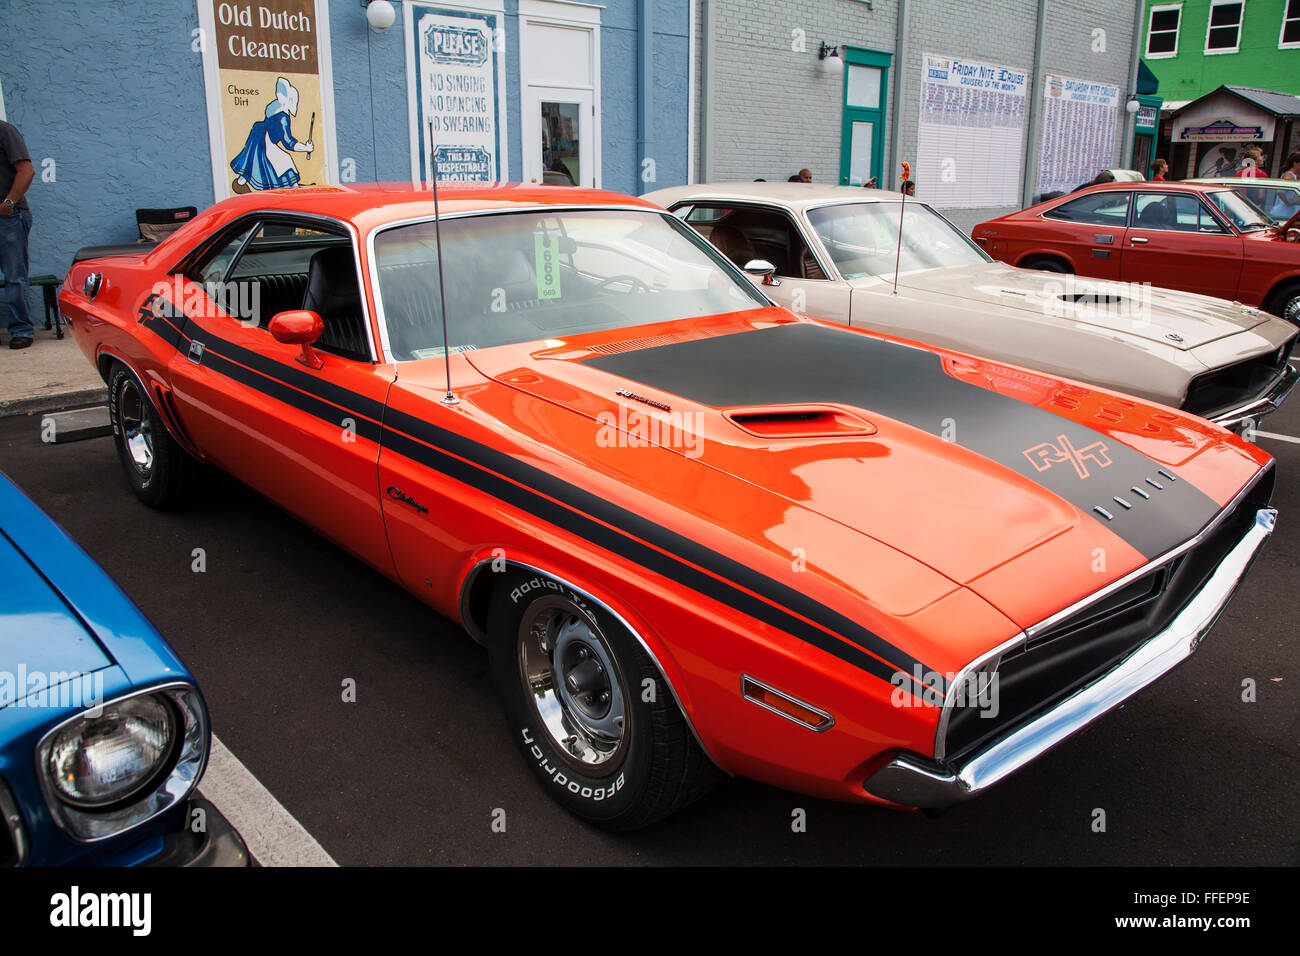 Dodge Challenger R T V8 At Kissimmee Old Town Weekly Car Cruise